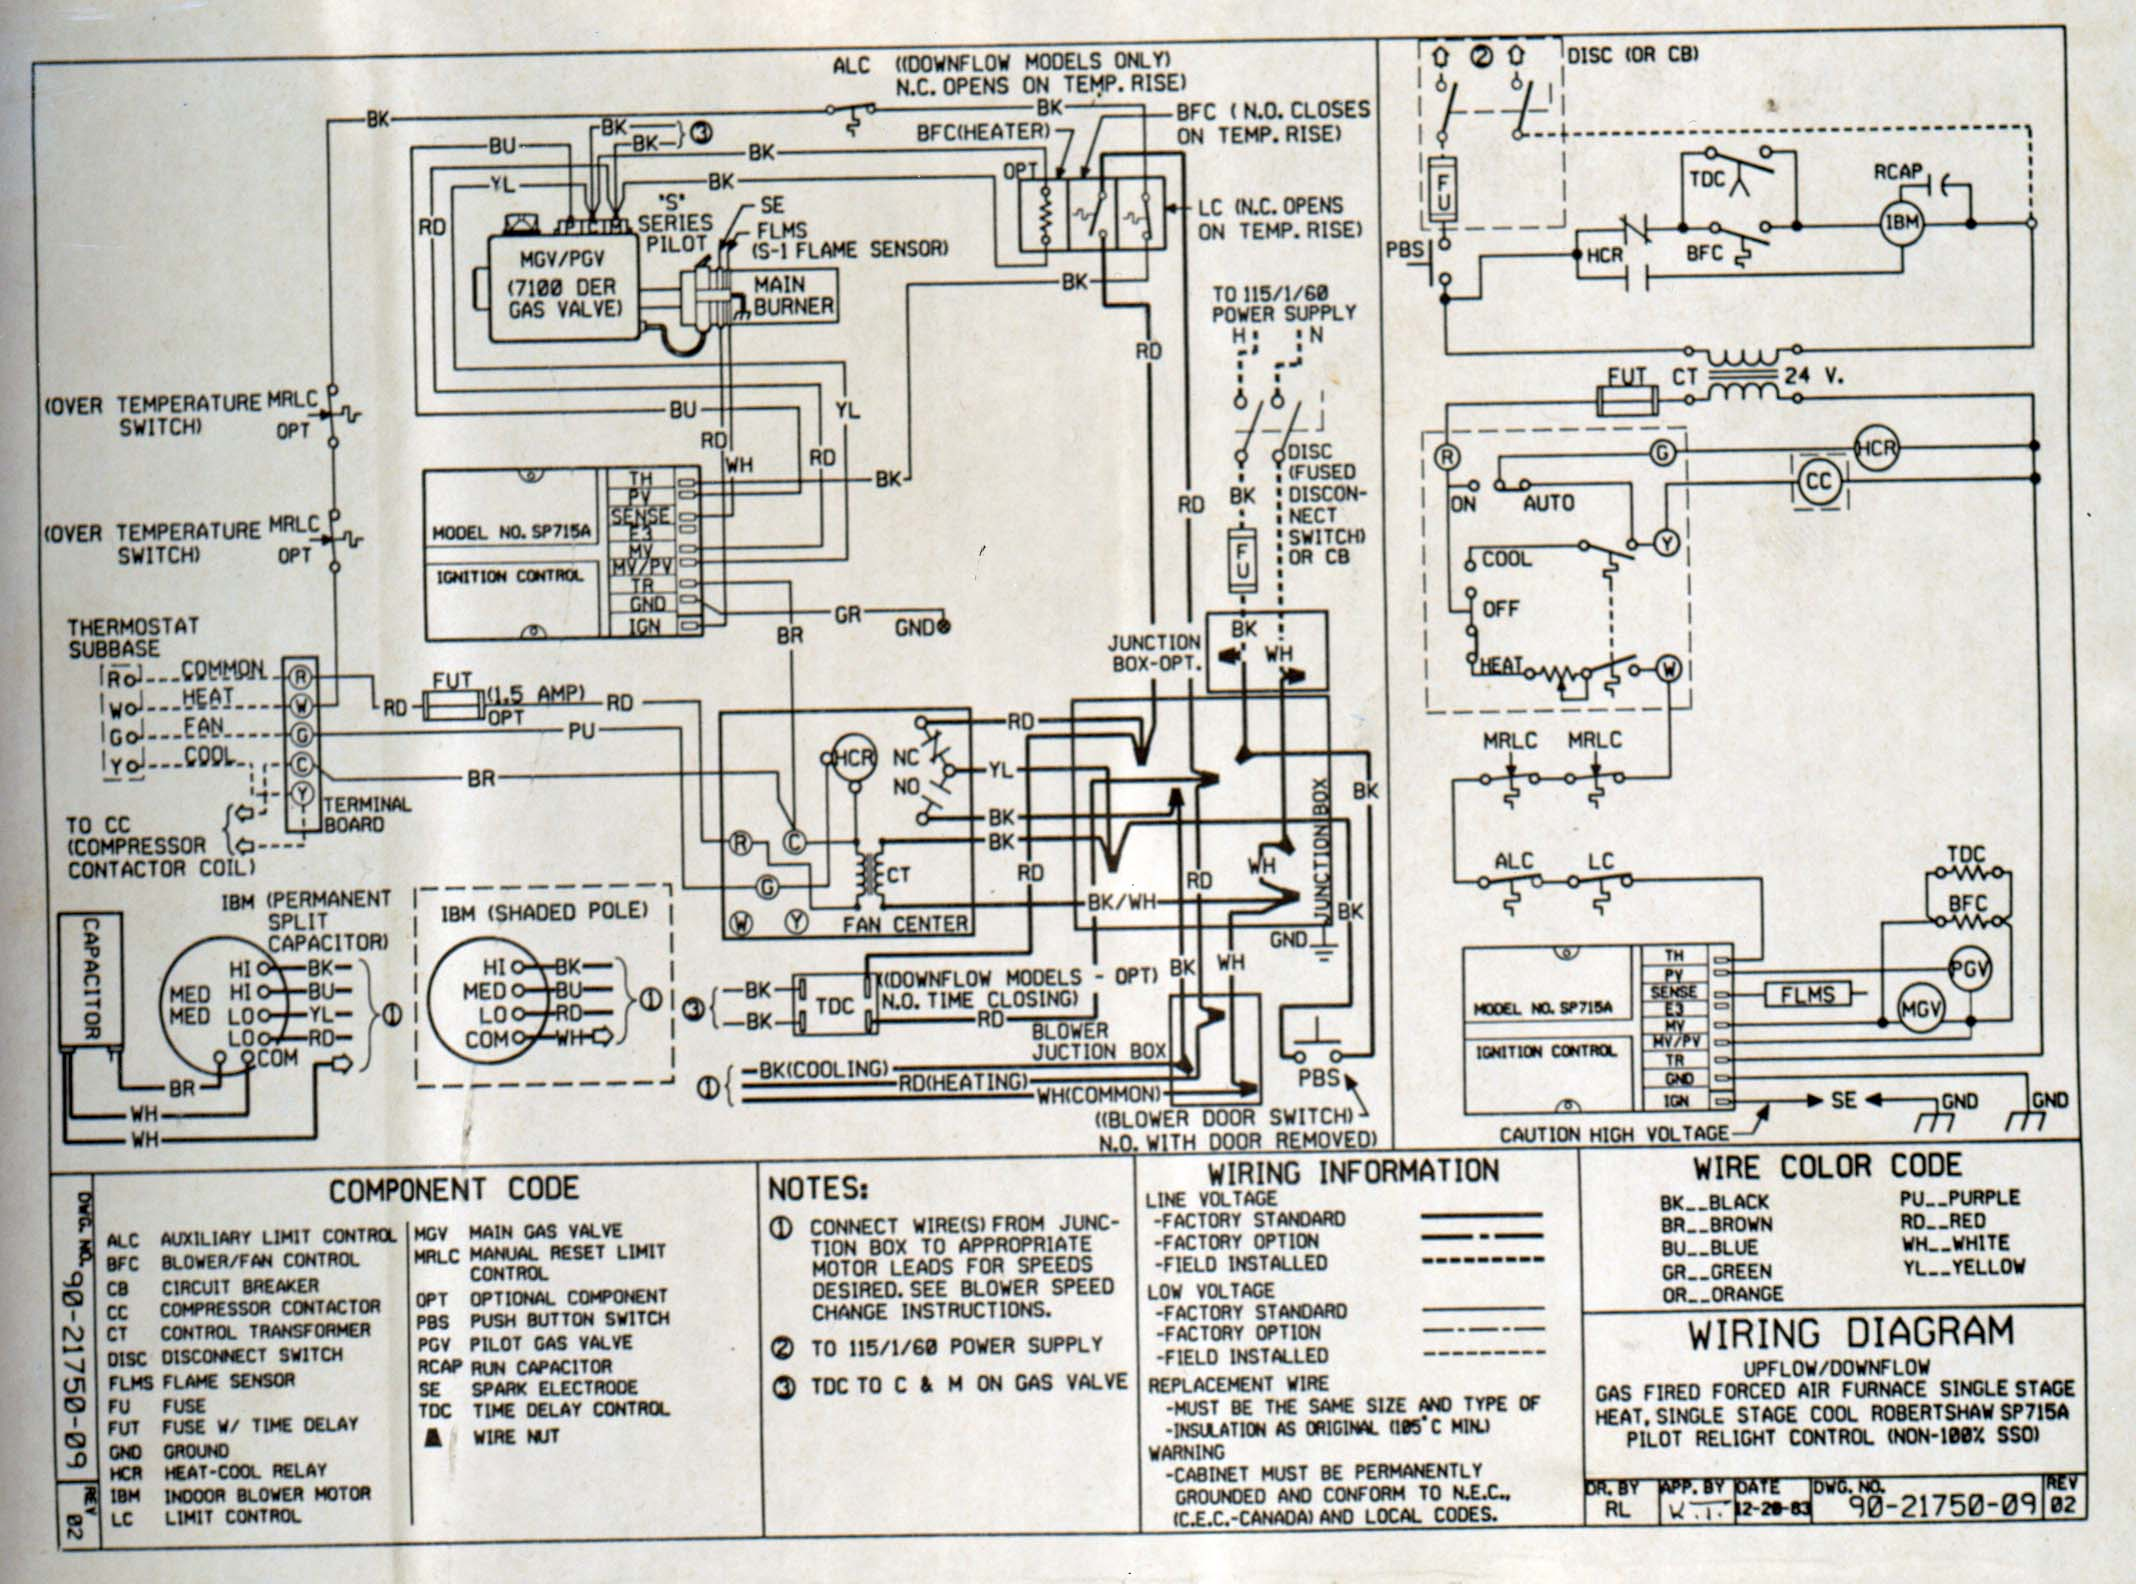 furnace fan won't stop running after the heating cycle is done wiring diagram older furnace ducane furnace wiring diagram older furnace heater relay